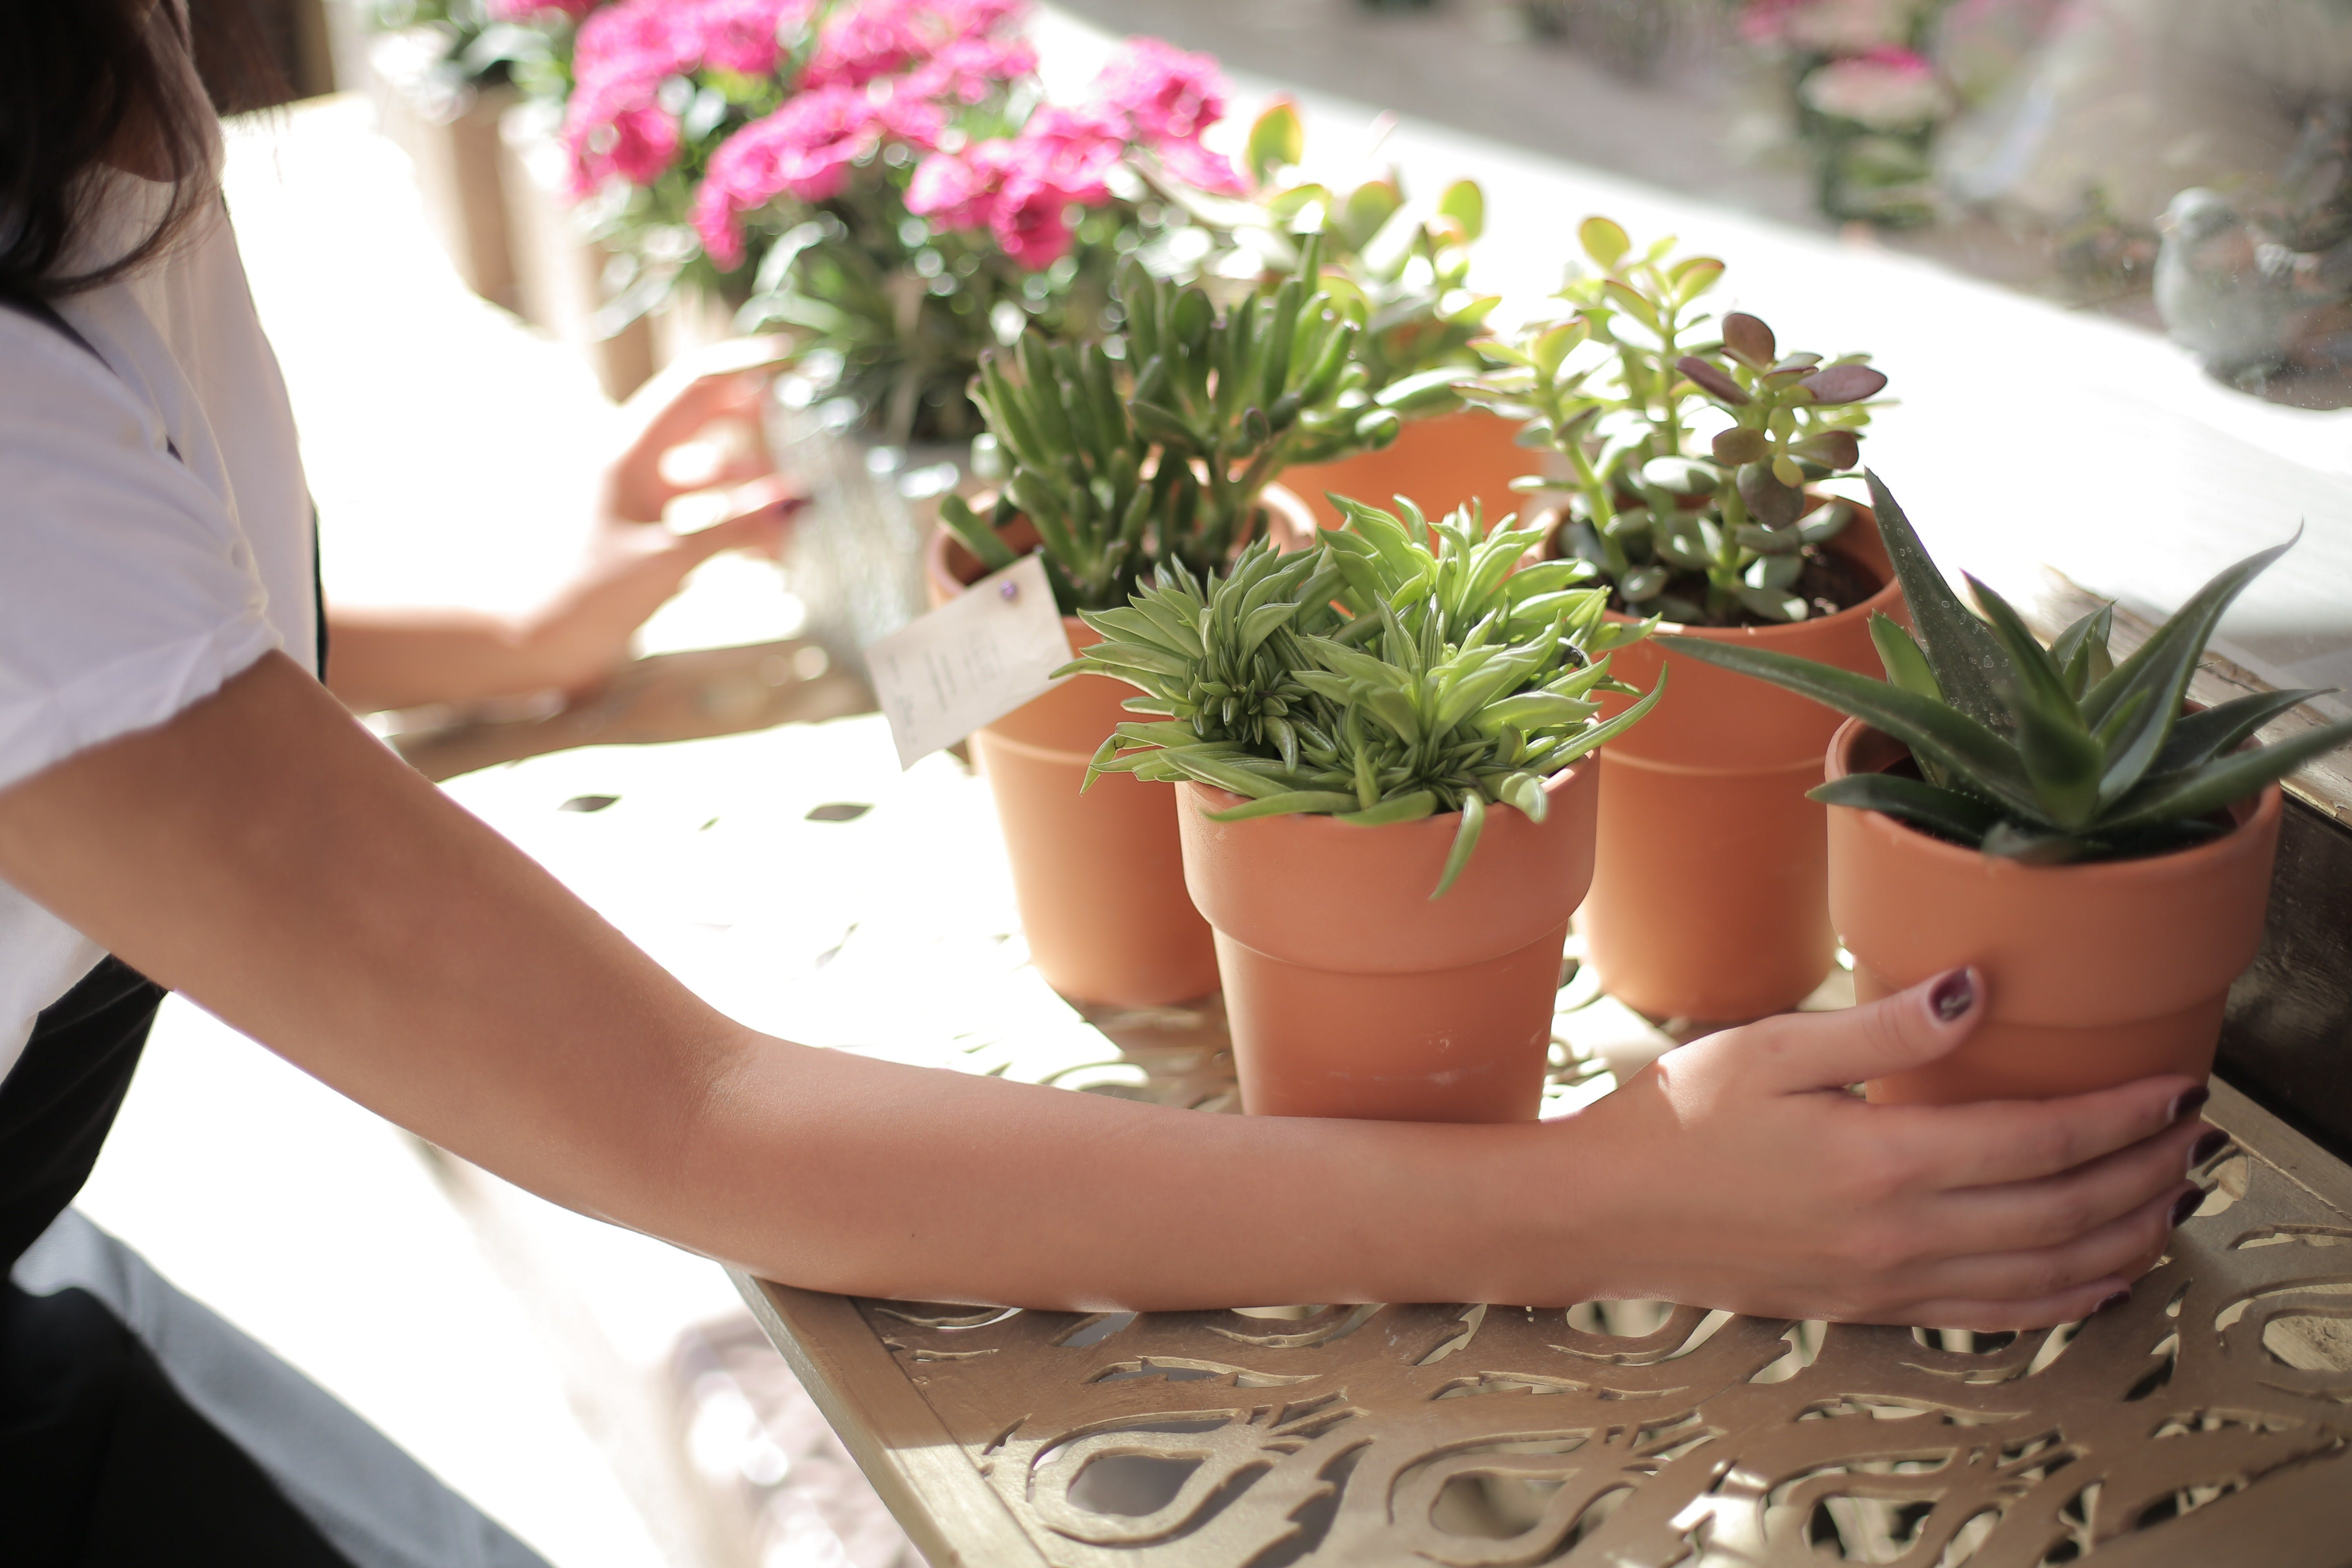 Woman Holding Green Leafed Plant on Pot